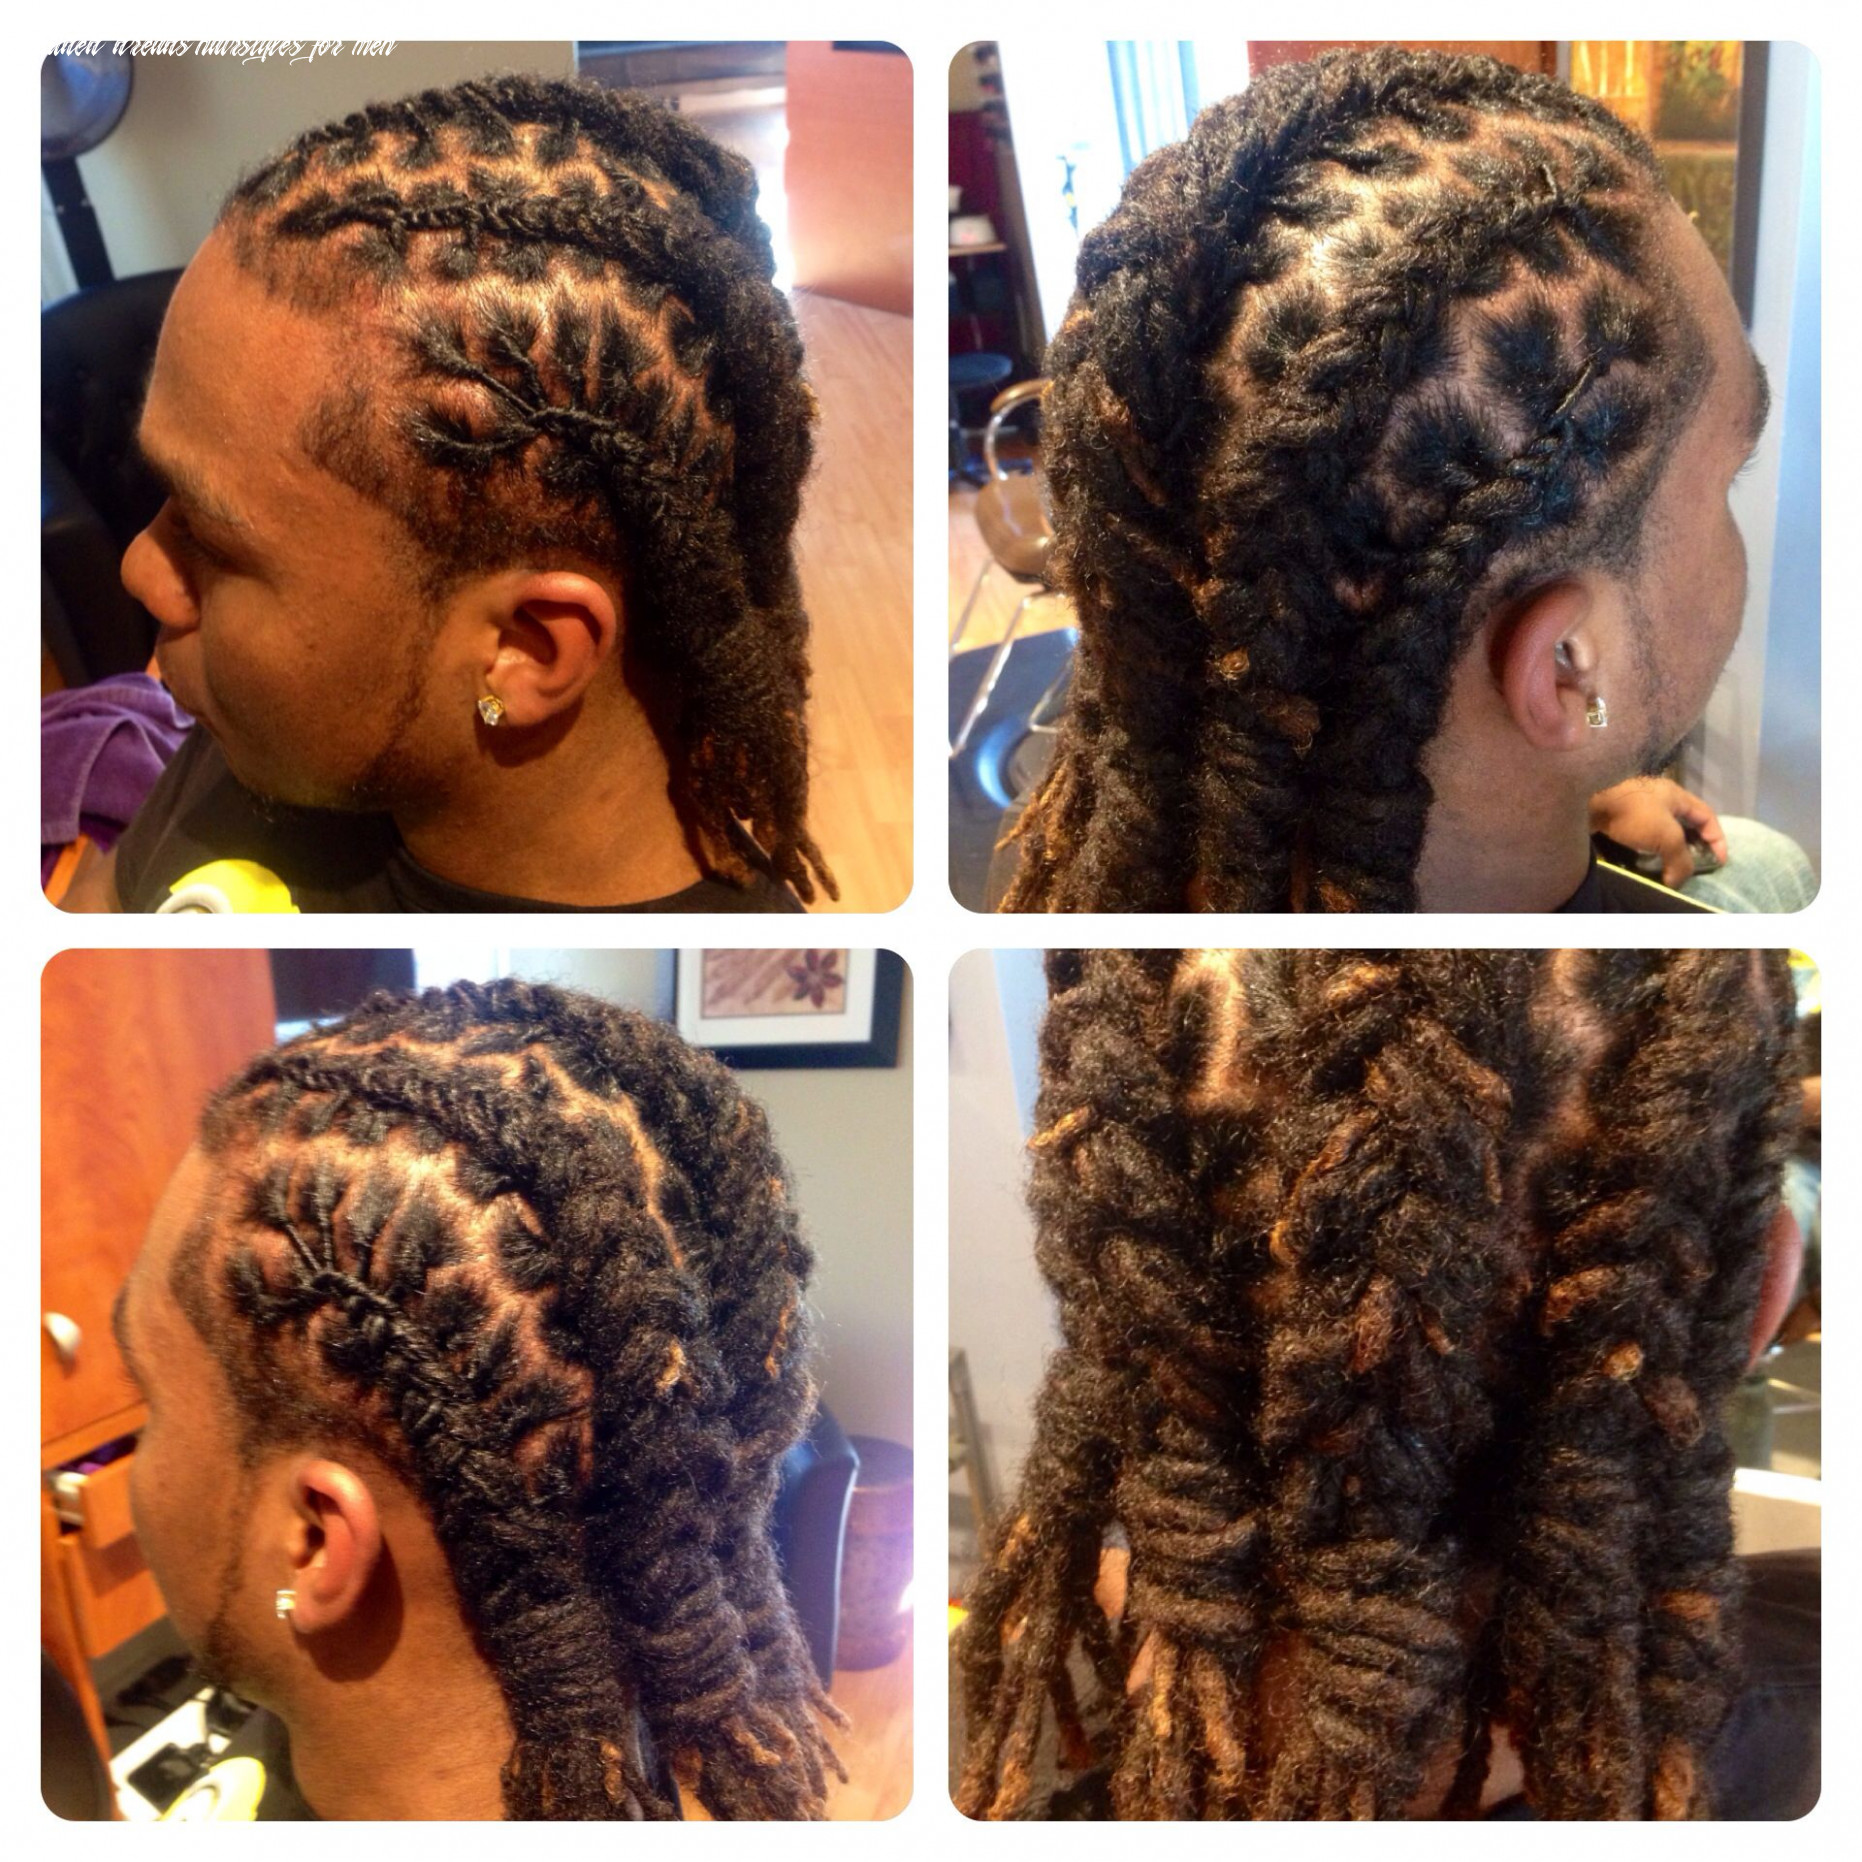 Loc styling for men | locs hairstyles, dread hairstyles, long hair